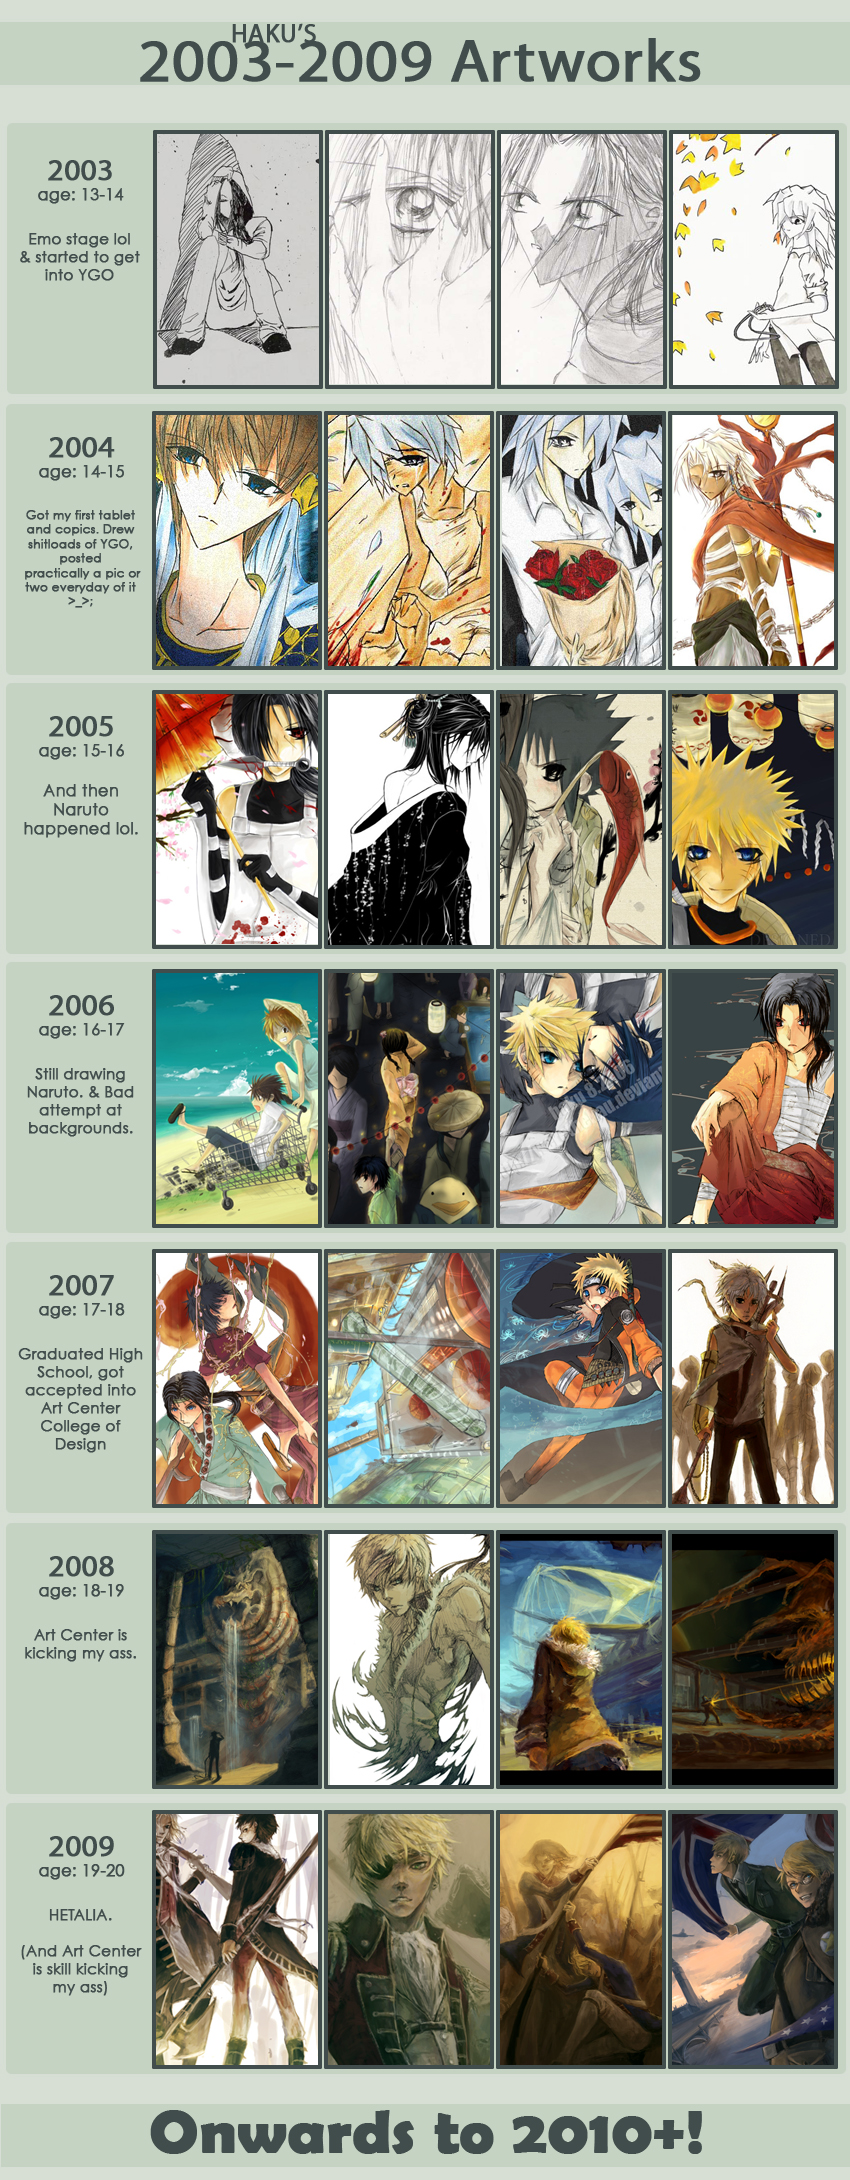 03-09 improvement meme by hakuku